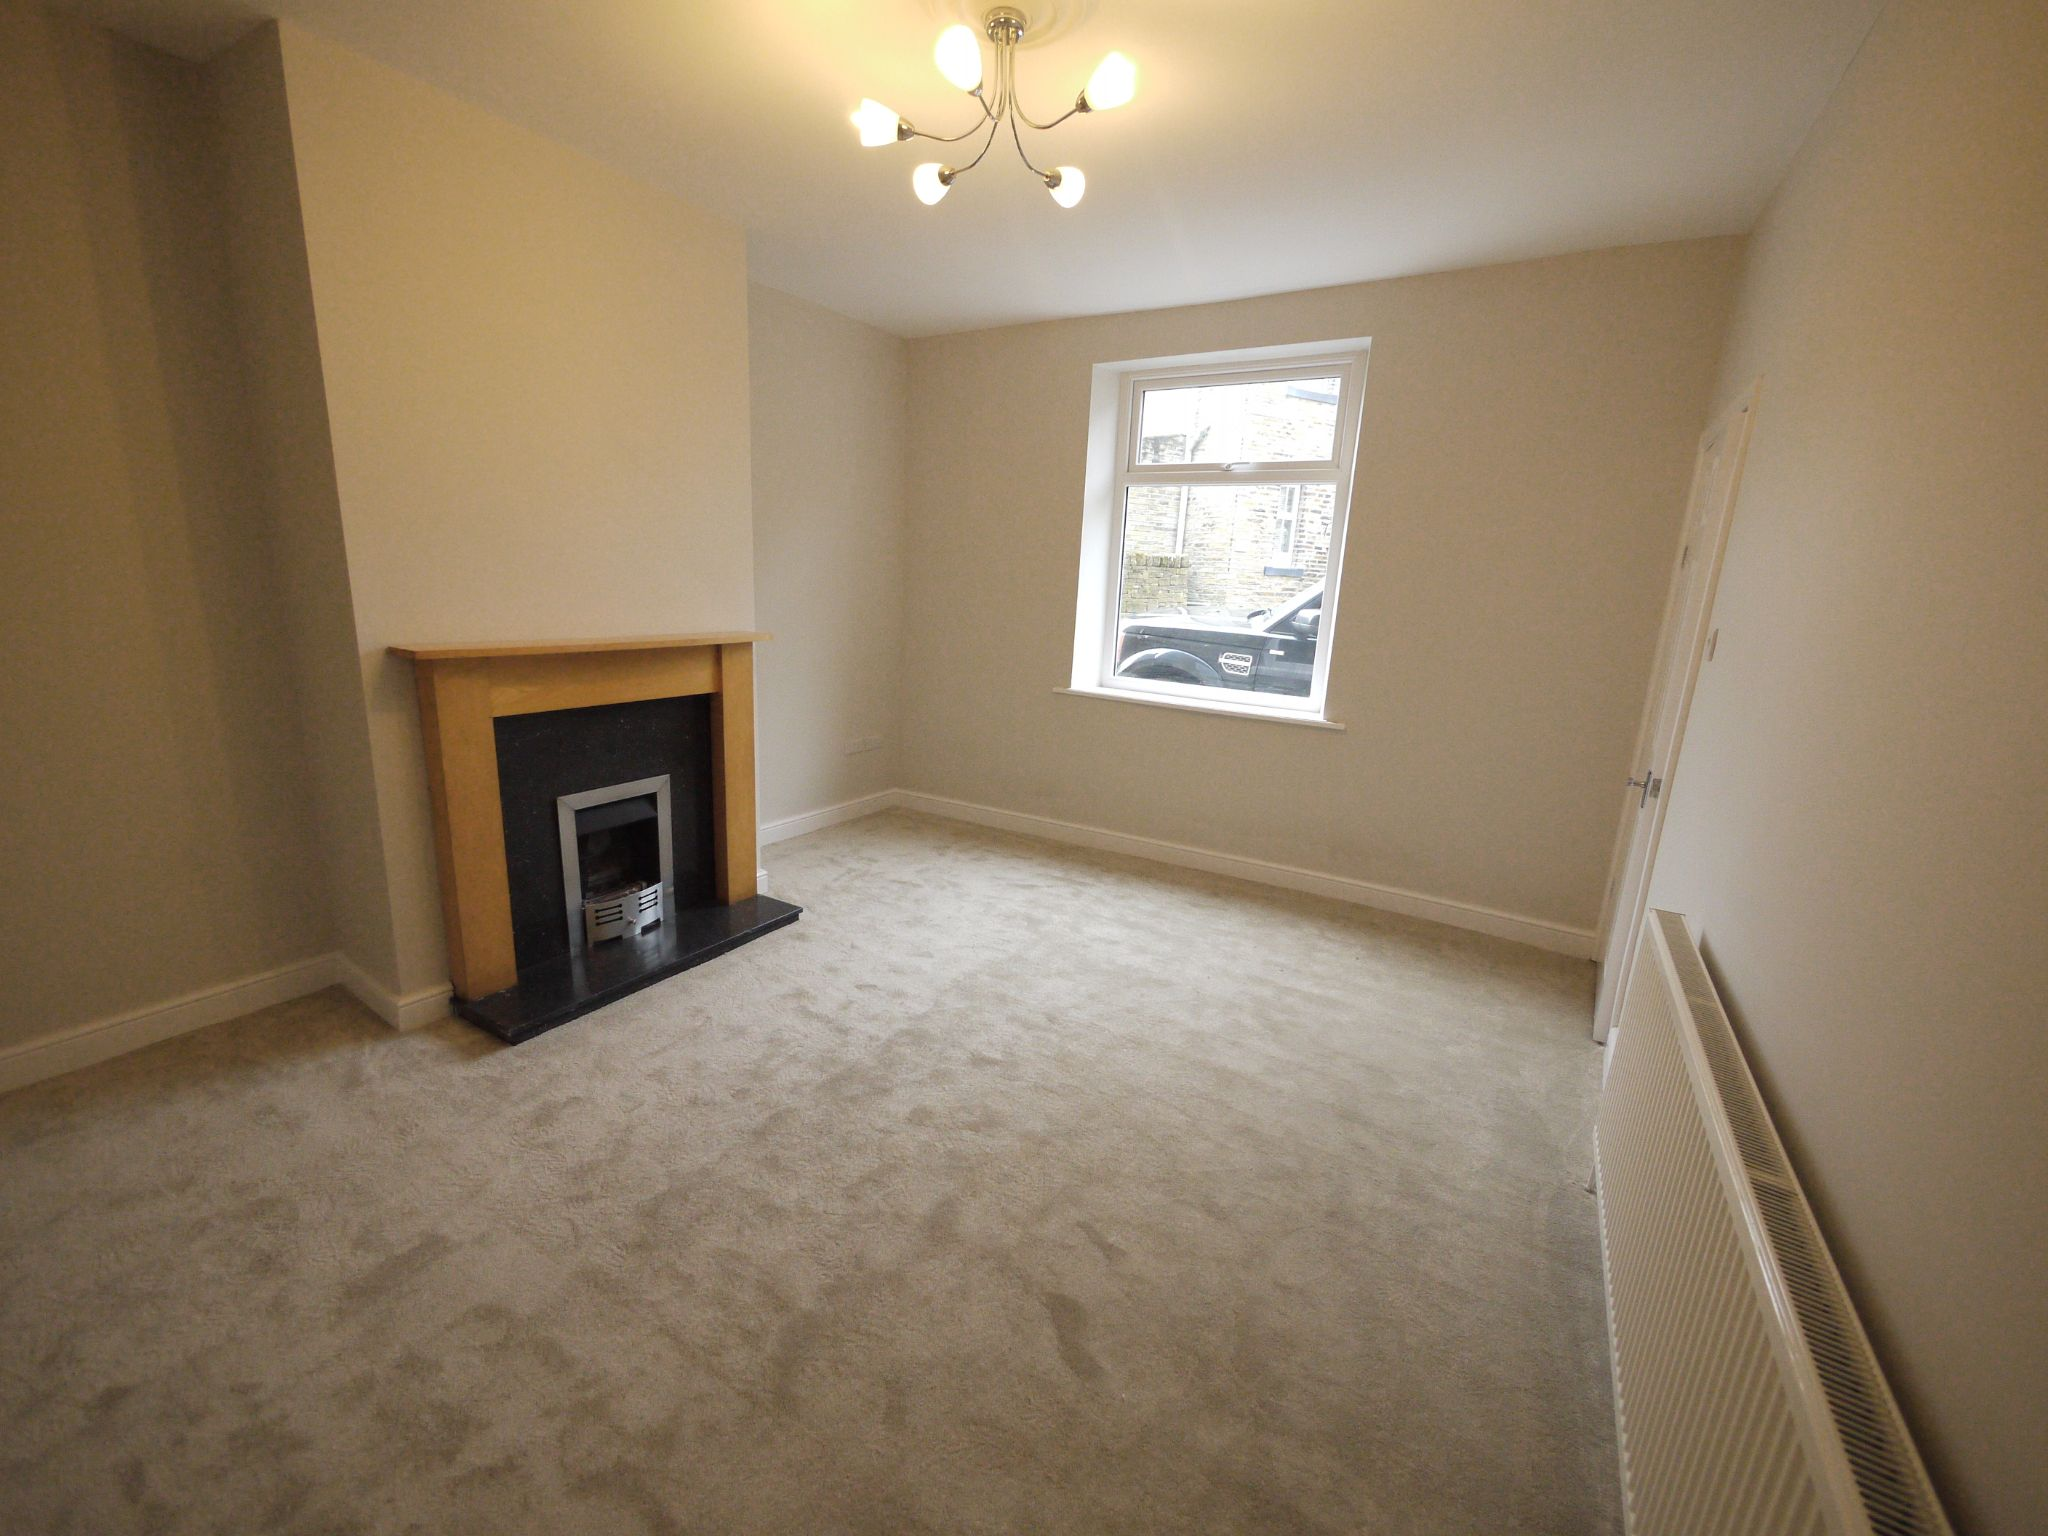 2 bedroom end terraced house SSTC in Brighouse - Lounge 2.